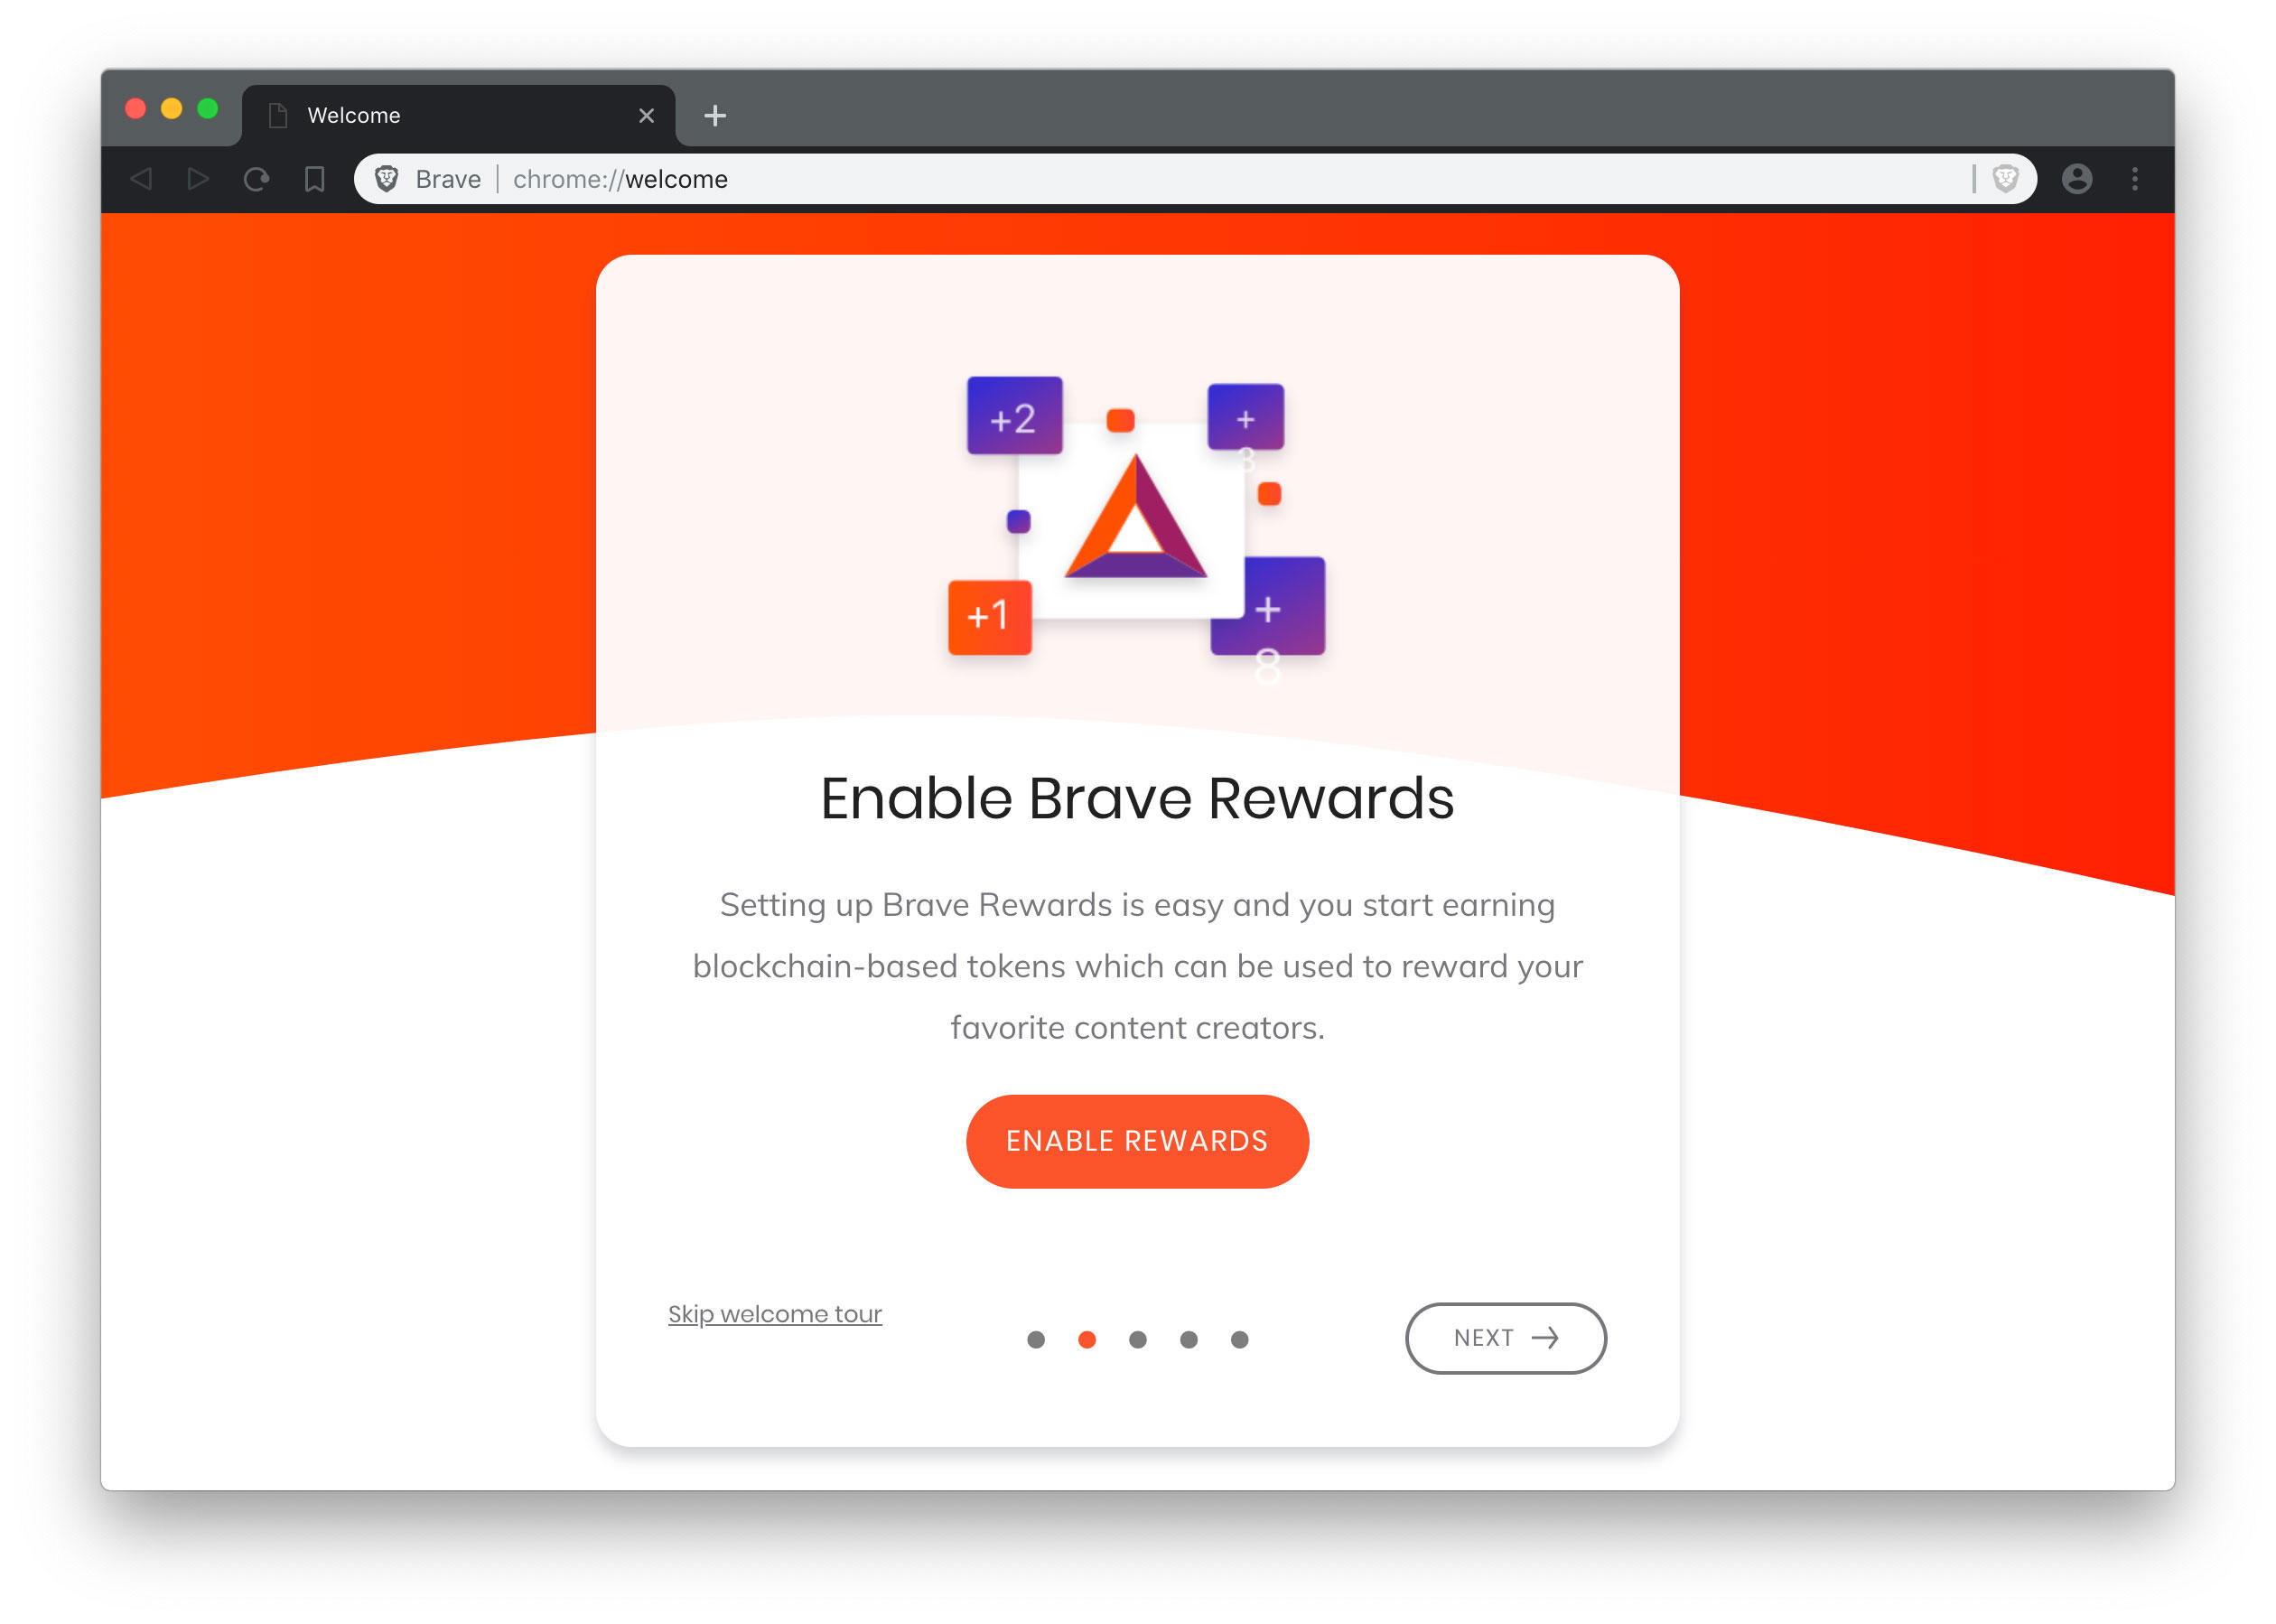 Brave Core inherits Chrome's new look, with curvy tabs and other interface elements.